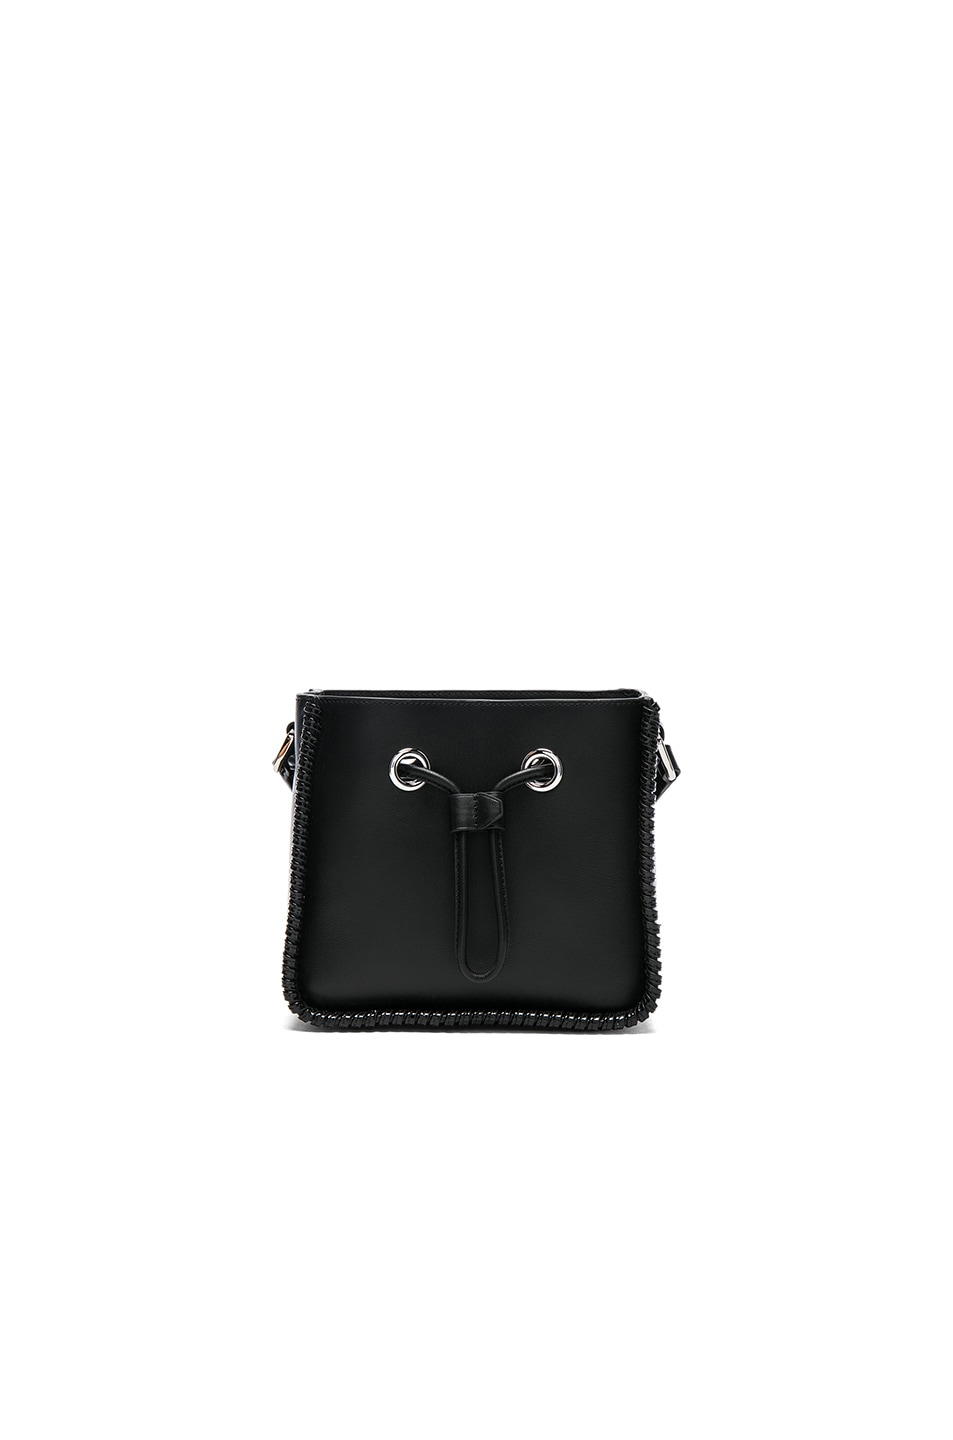 Image 1 of 3.1 phillip lim Soleil Mini Bucket Drawstring Bag in Black